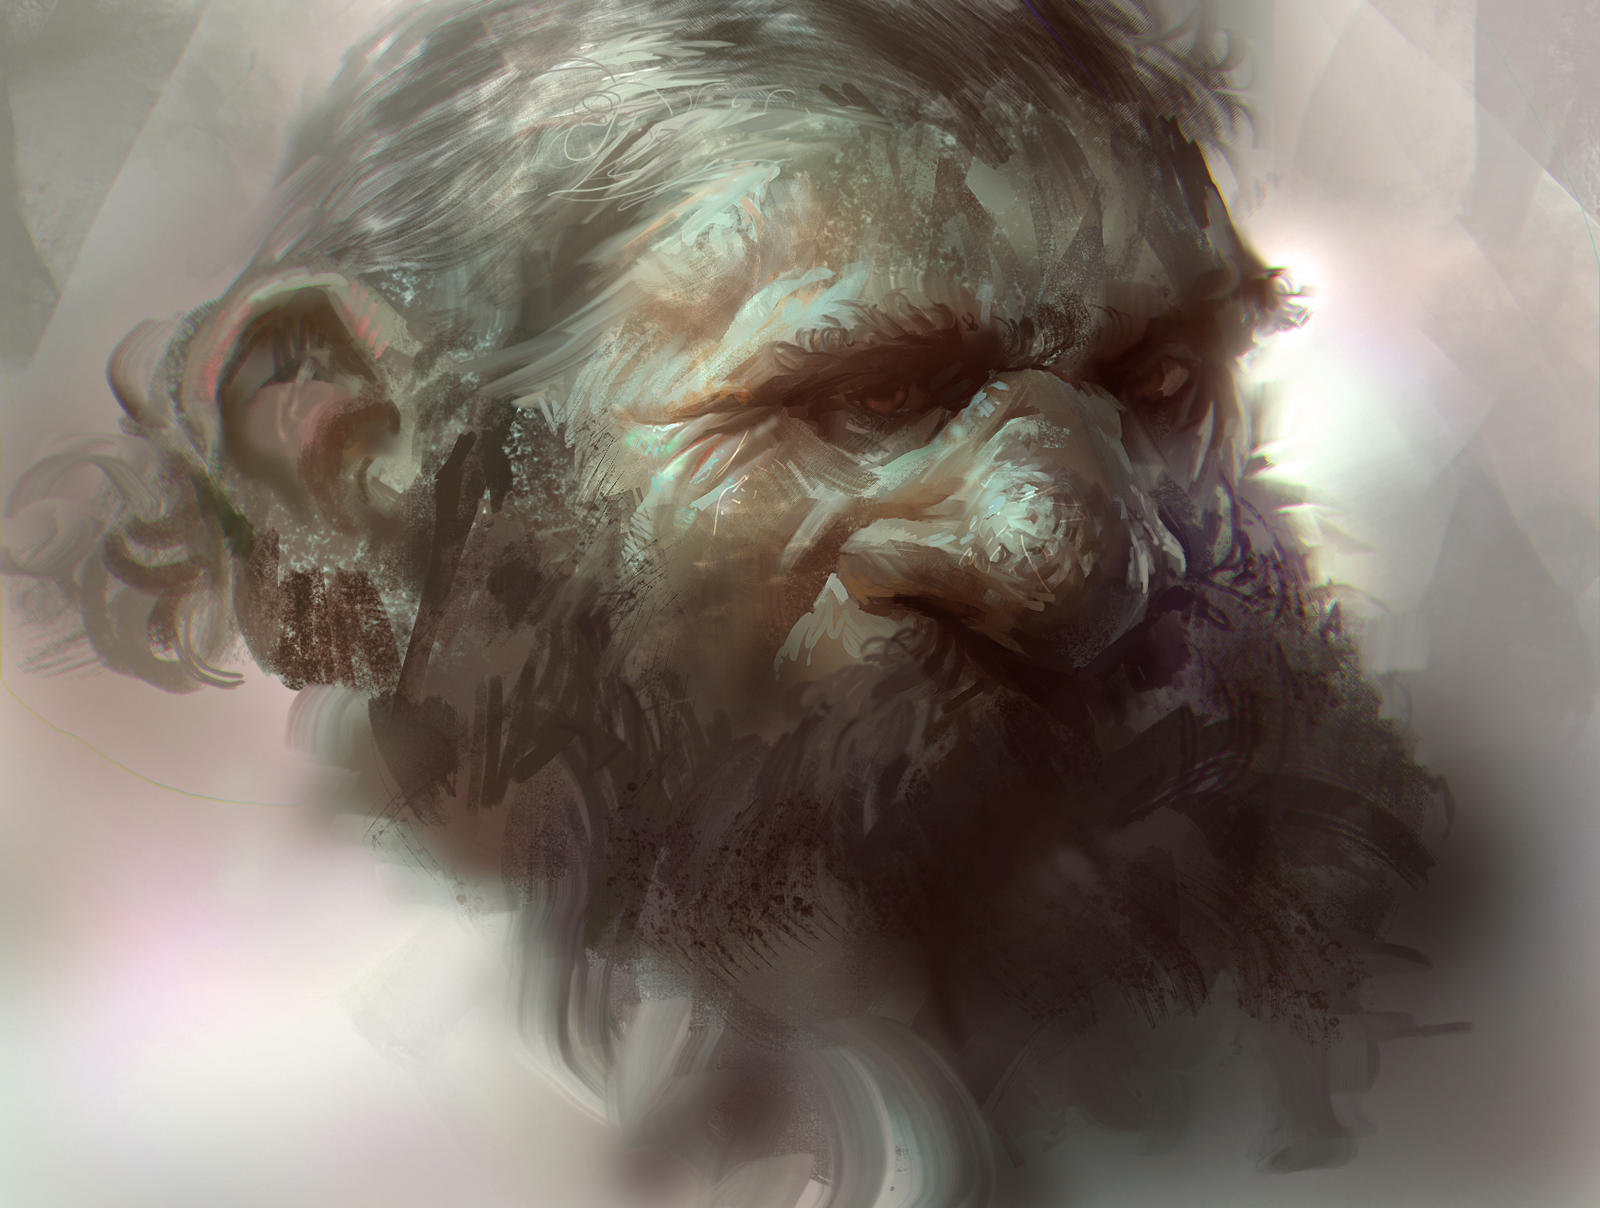 Dwarf head by MikeAzevedo